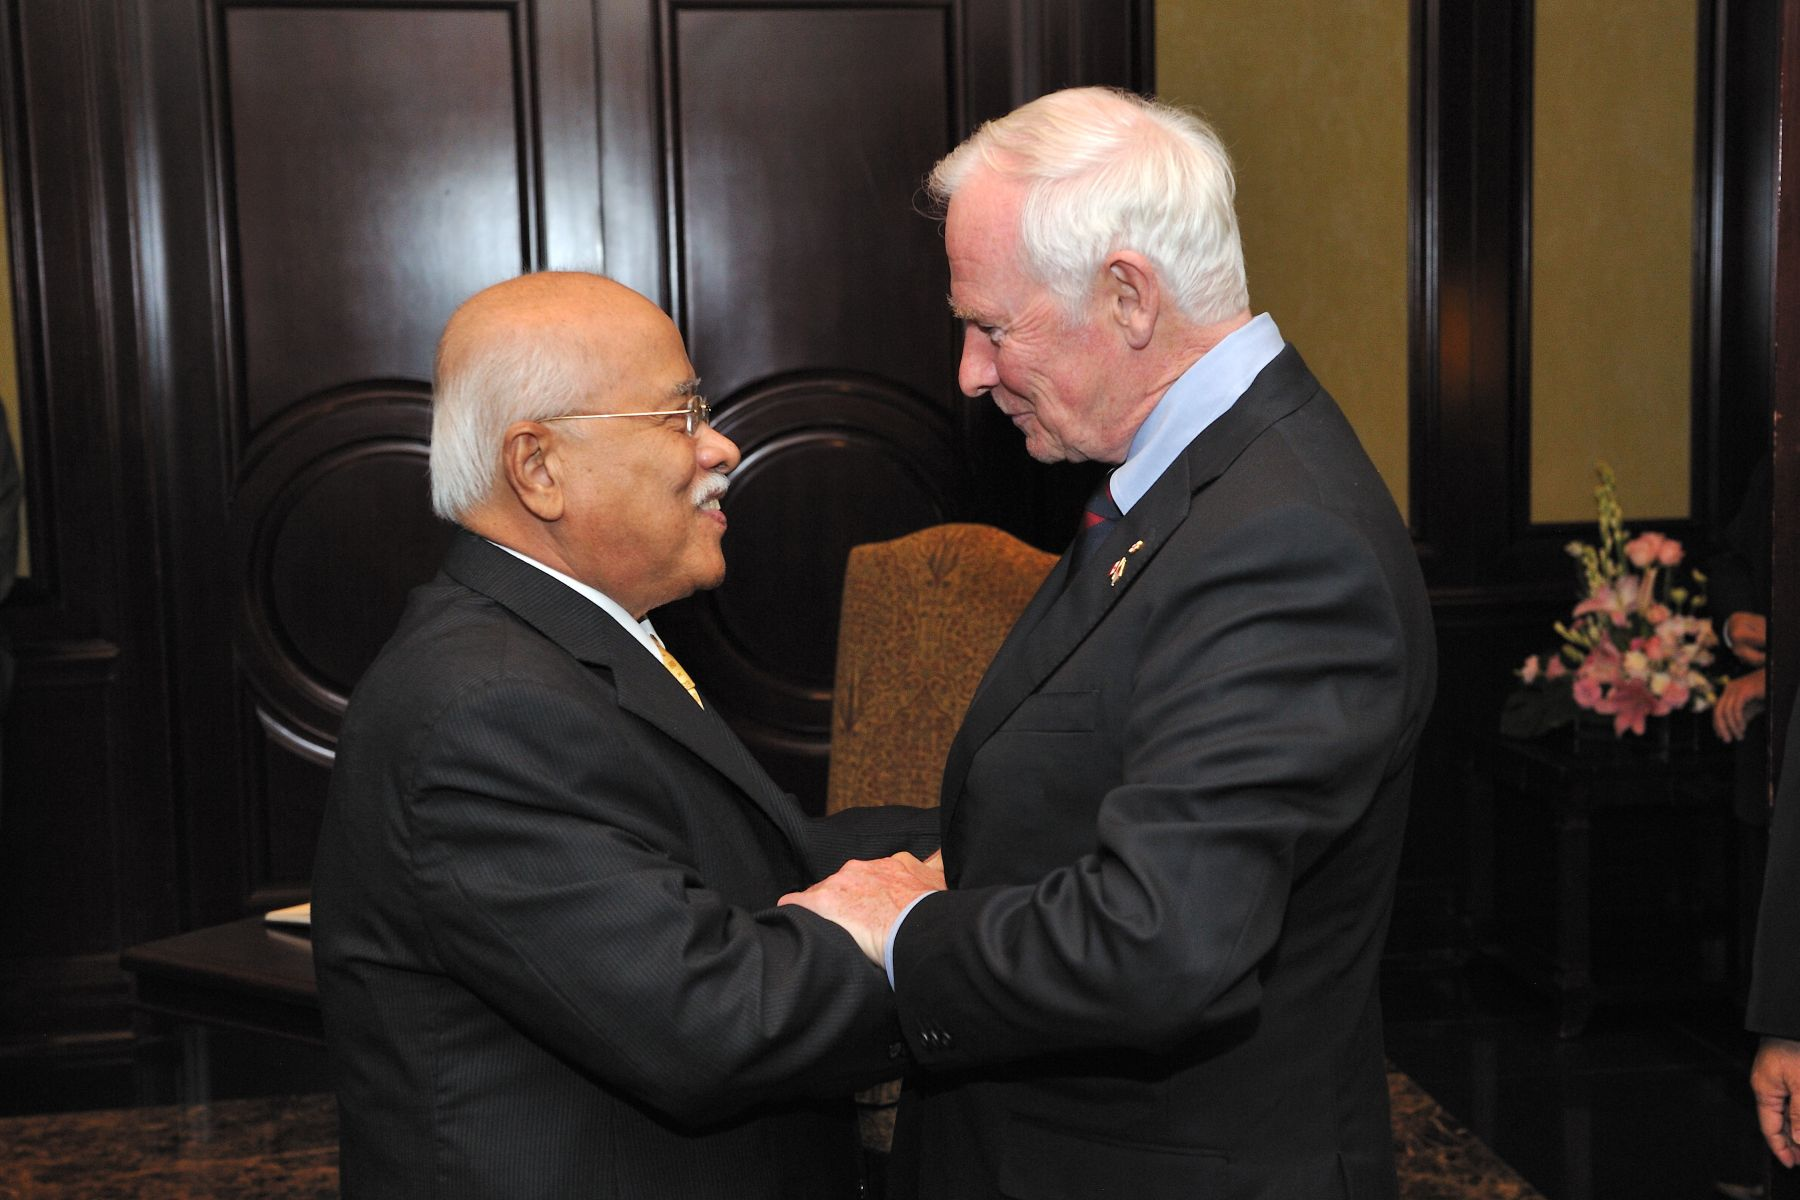 Later in the evening, the Governor General met with Tun Dato' Sri Utama Abdul Rahman Abbas, Governor of Penang.